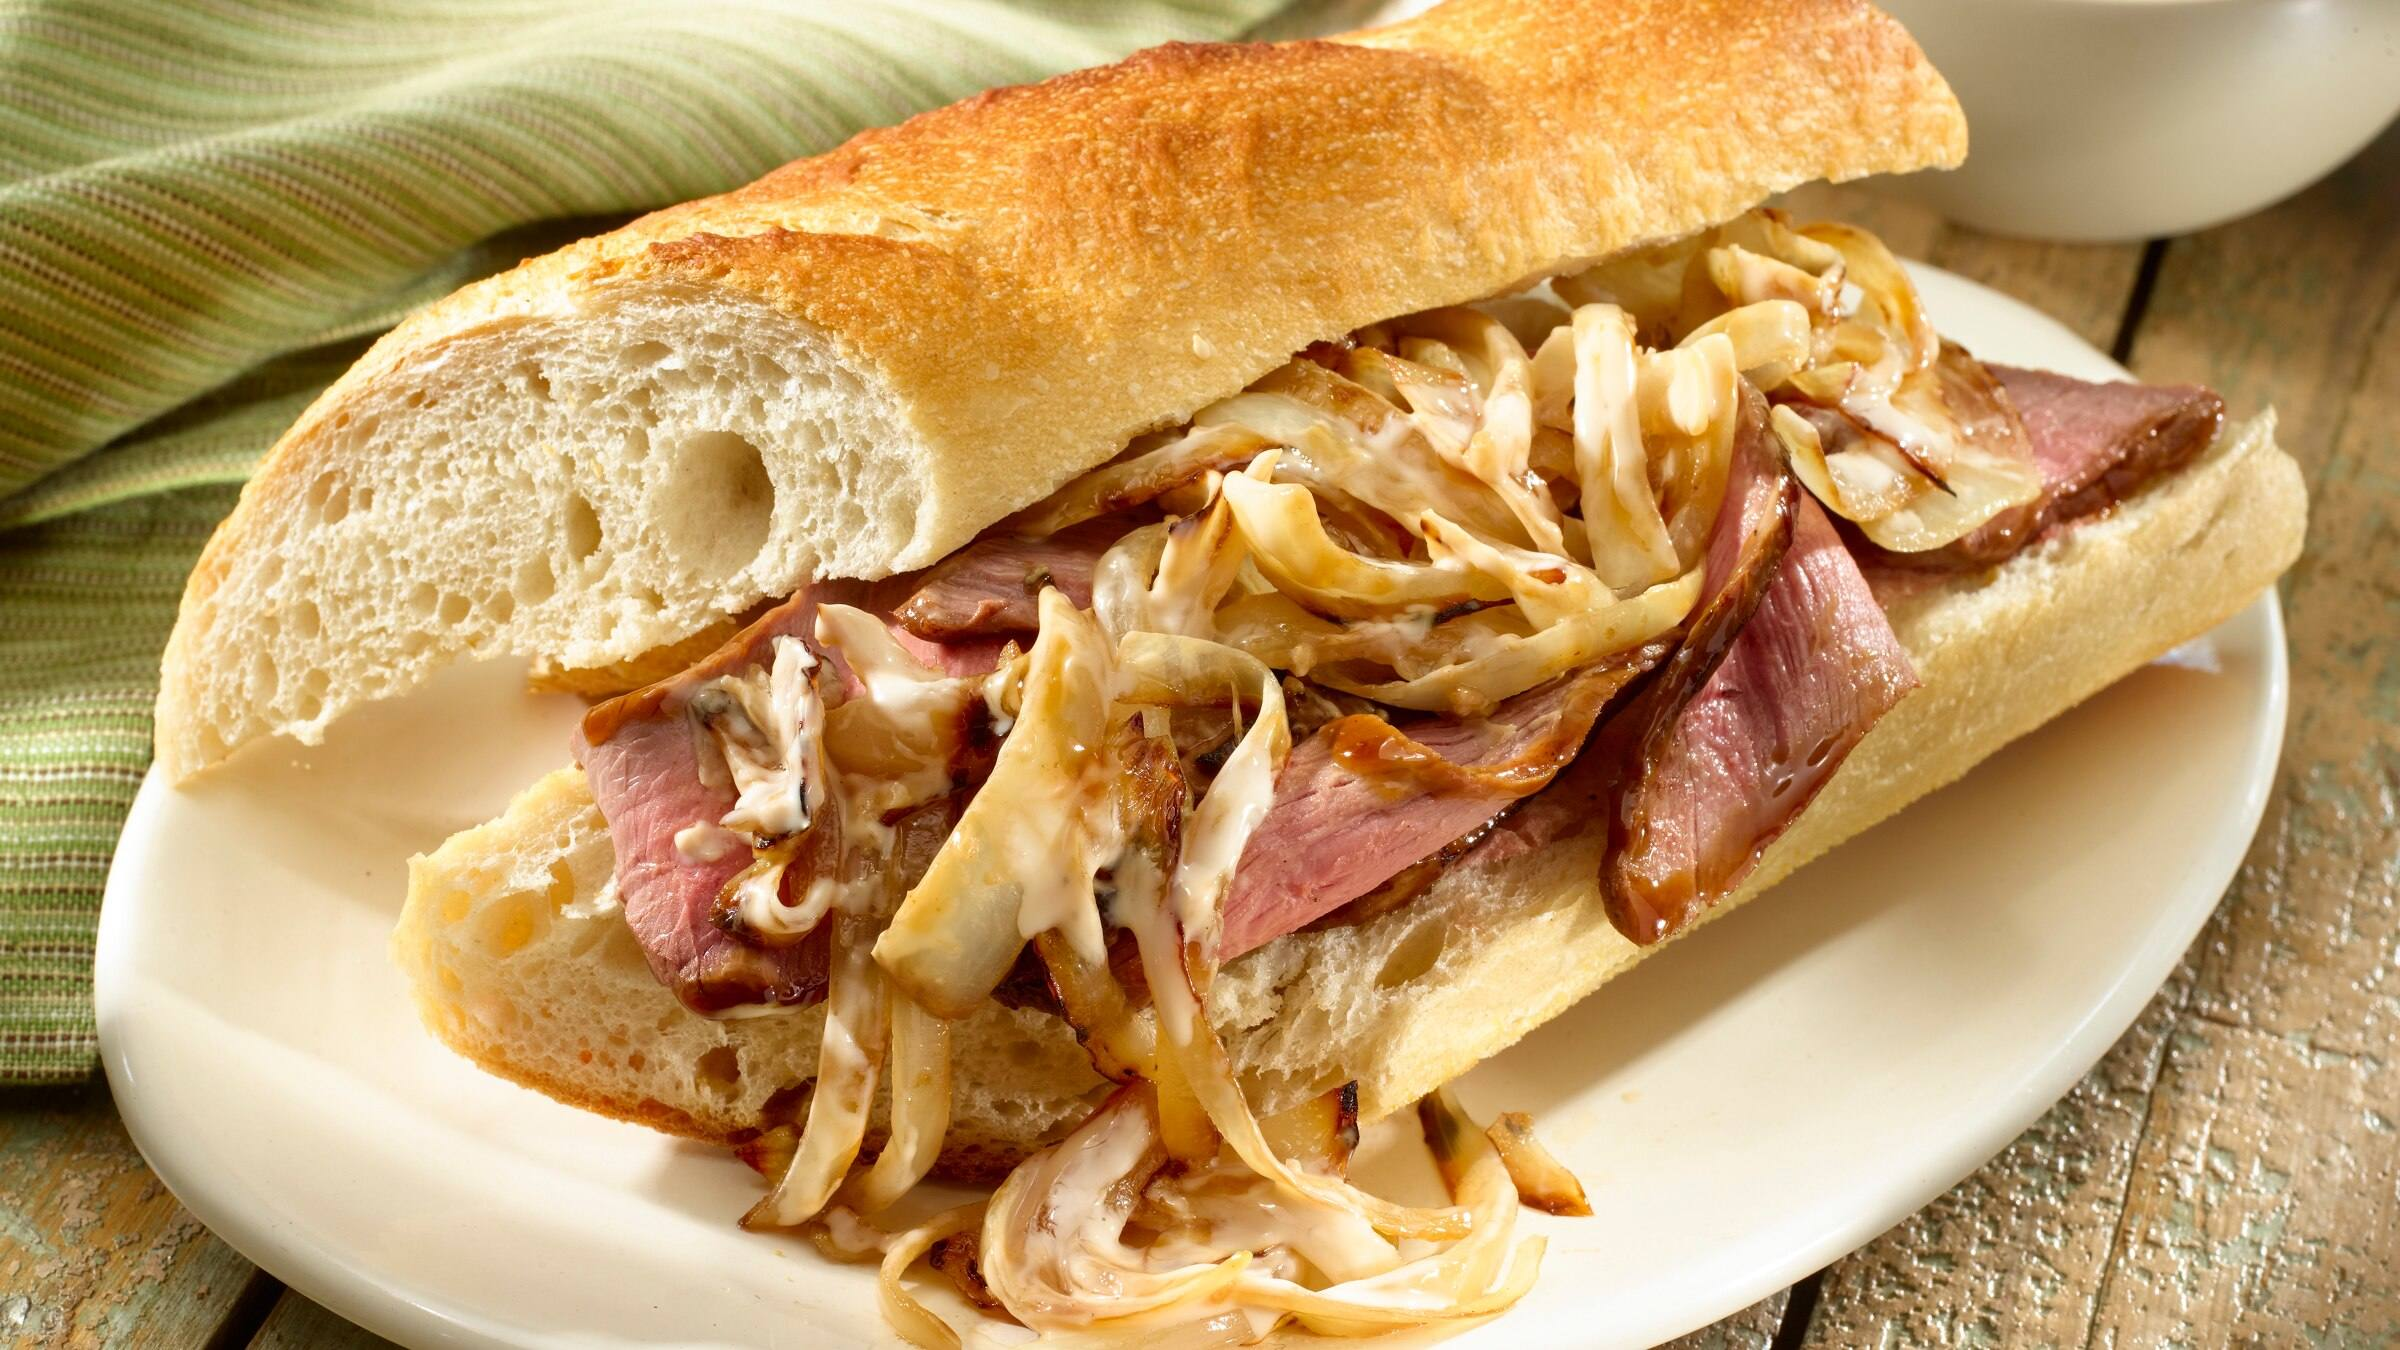 Caramelized Onion and Steak Sandwiches Recipe